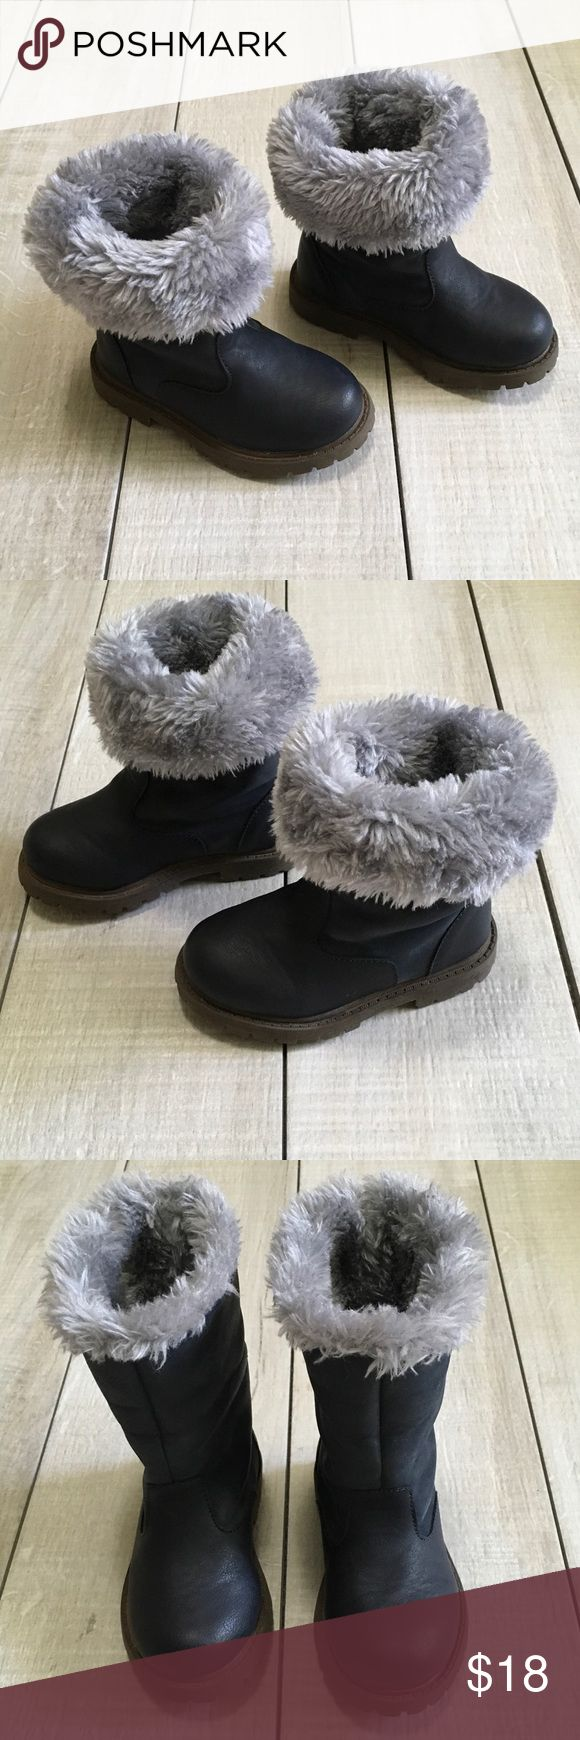 Carters Navy Faux Fur Boots Size 7. Carters navy boots with faux fur that can be worn rolled down or rolled up. Super cute and match everything! Good used condition. Box included.  🎀Posh Ambassador 📫Fast Shipping 🚭Smoke free home/Fragrance free laundry products 🤑Offers welcome/Bundle offer discounts Carter's Shoes Boots